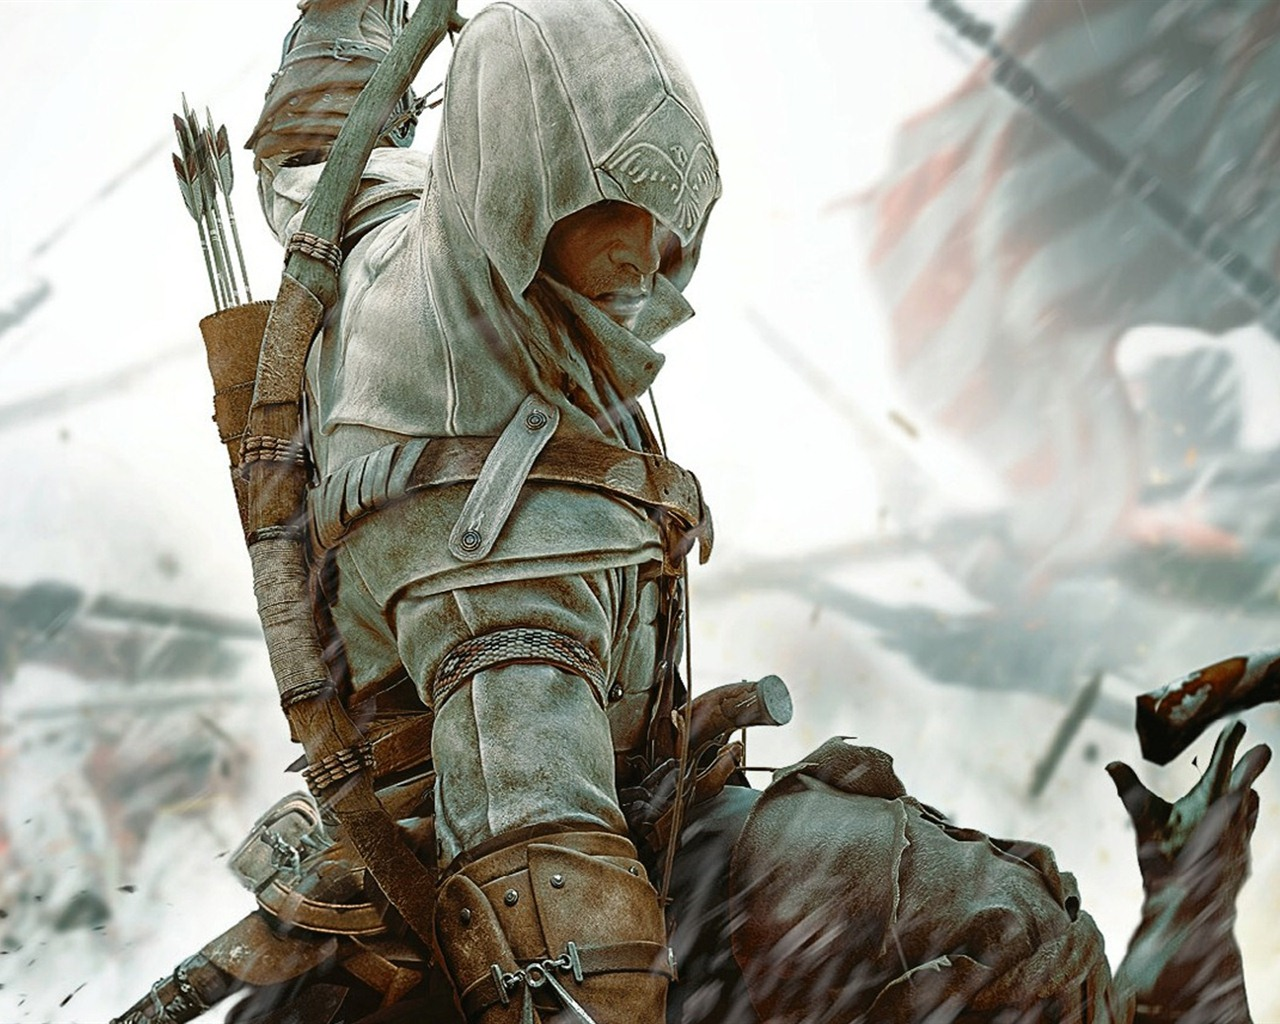 Assassin's Creed 3 HD wallpapers #18 - 1280x1024